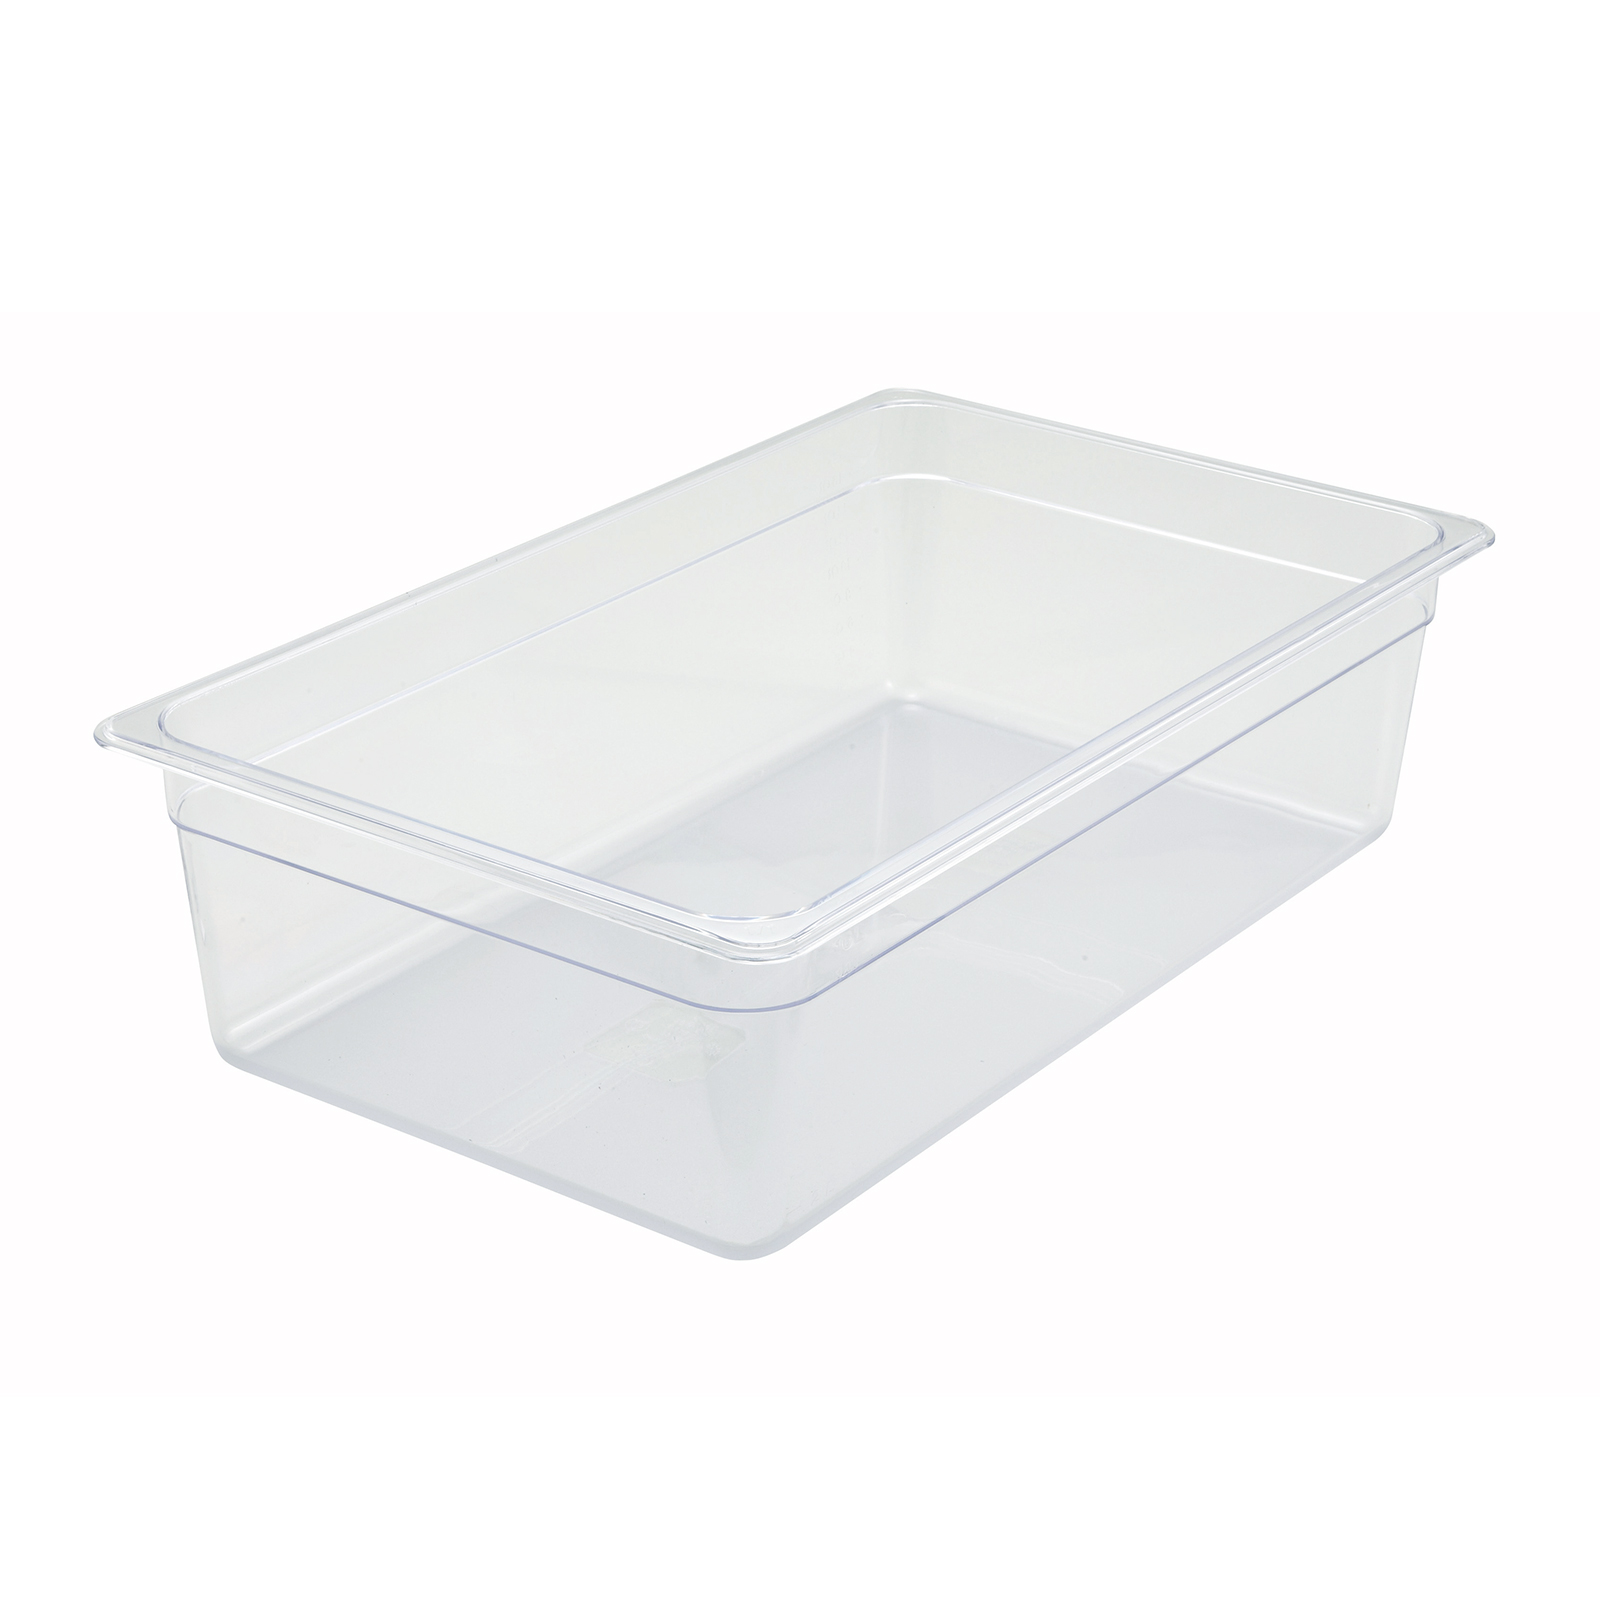 2410-012 Winco SP7106 FULL size 6in D food pan, plastic